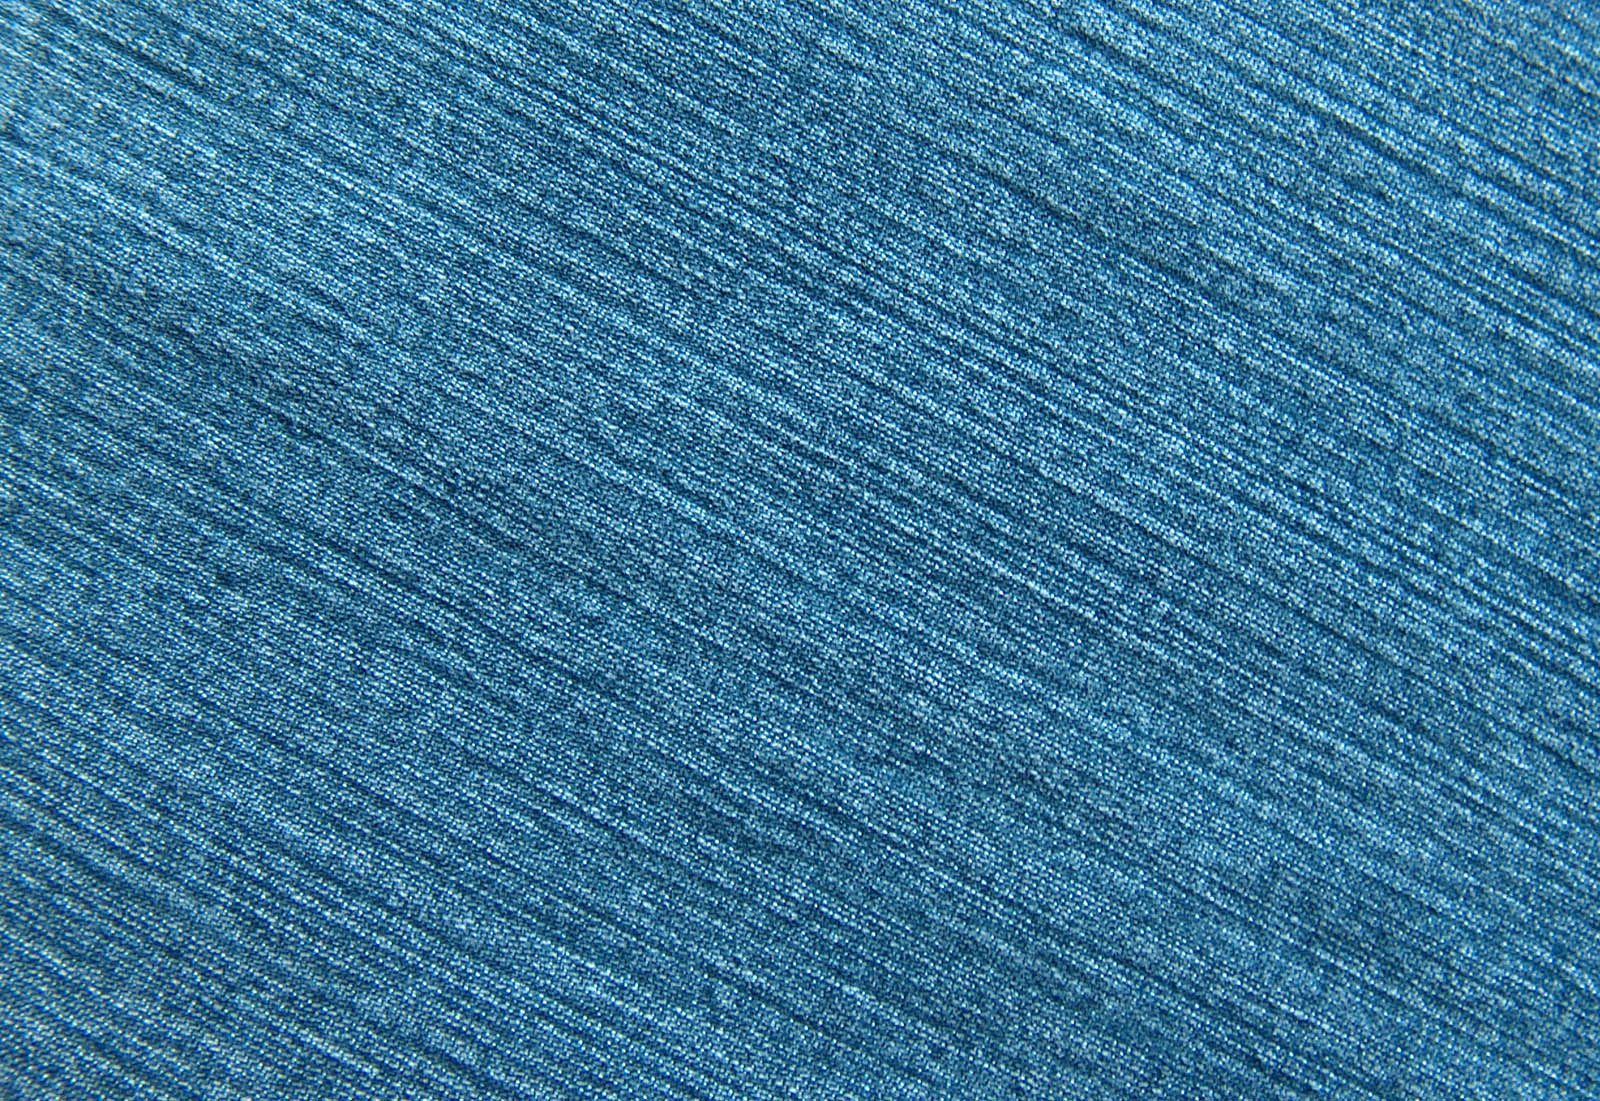 Free Fabric Texture - Jeans Stock Photo - FreeImages.com